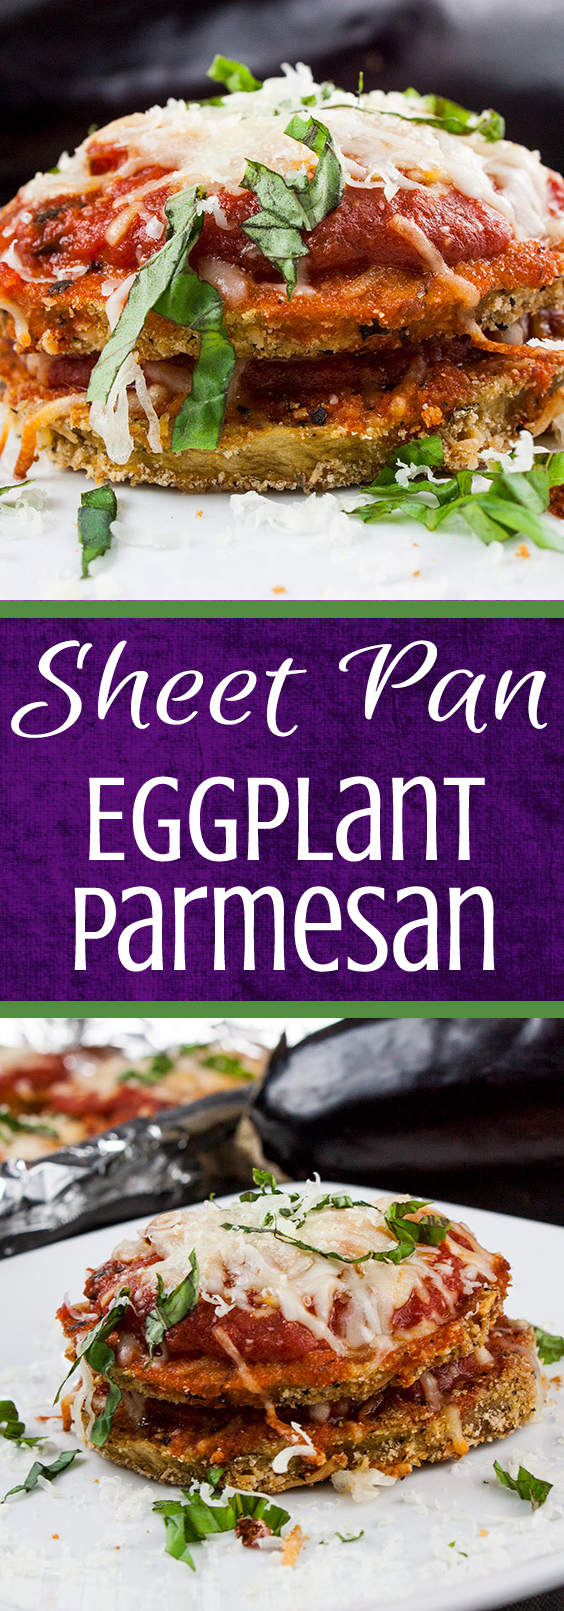 Sheet Pan Eggplant Parmesan - An easier and healthier version of an Italian classic. Crispy baked eggplant topped with tangy marinara sauce and smothered in creamy melted mozzarella cheese! #dinner #italian